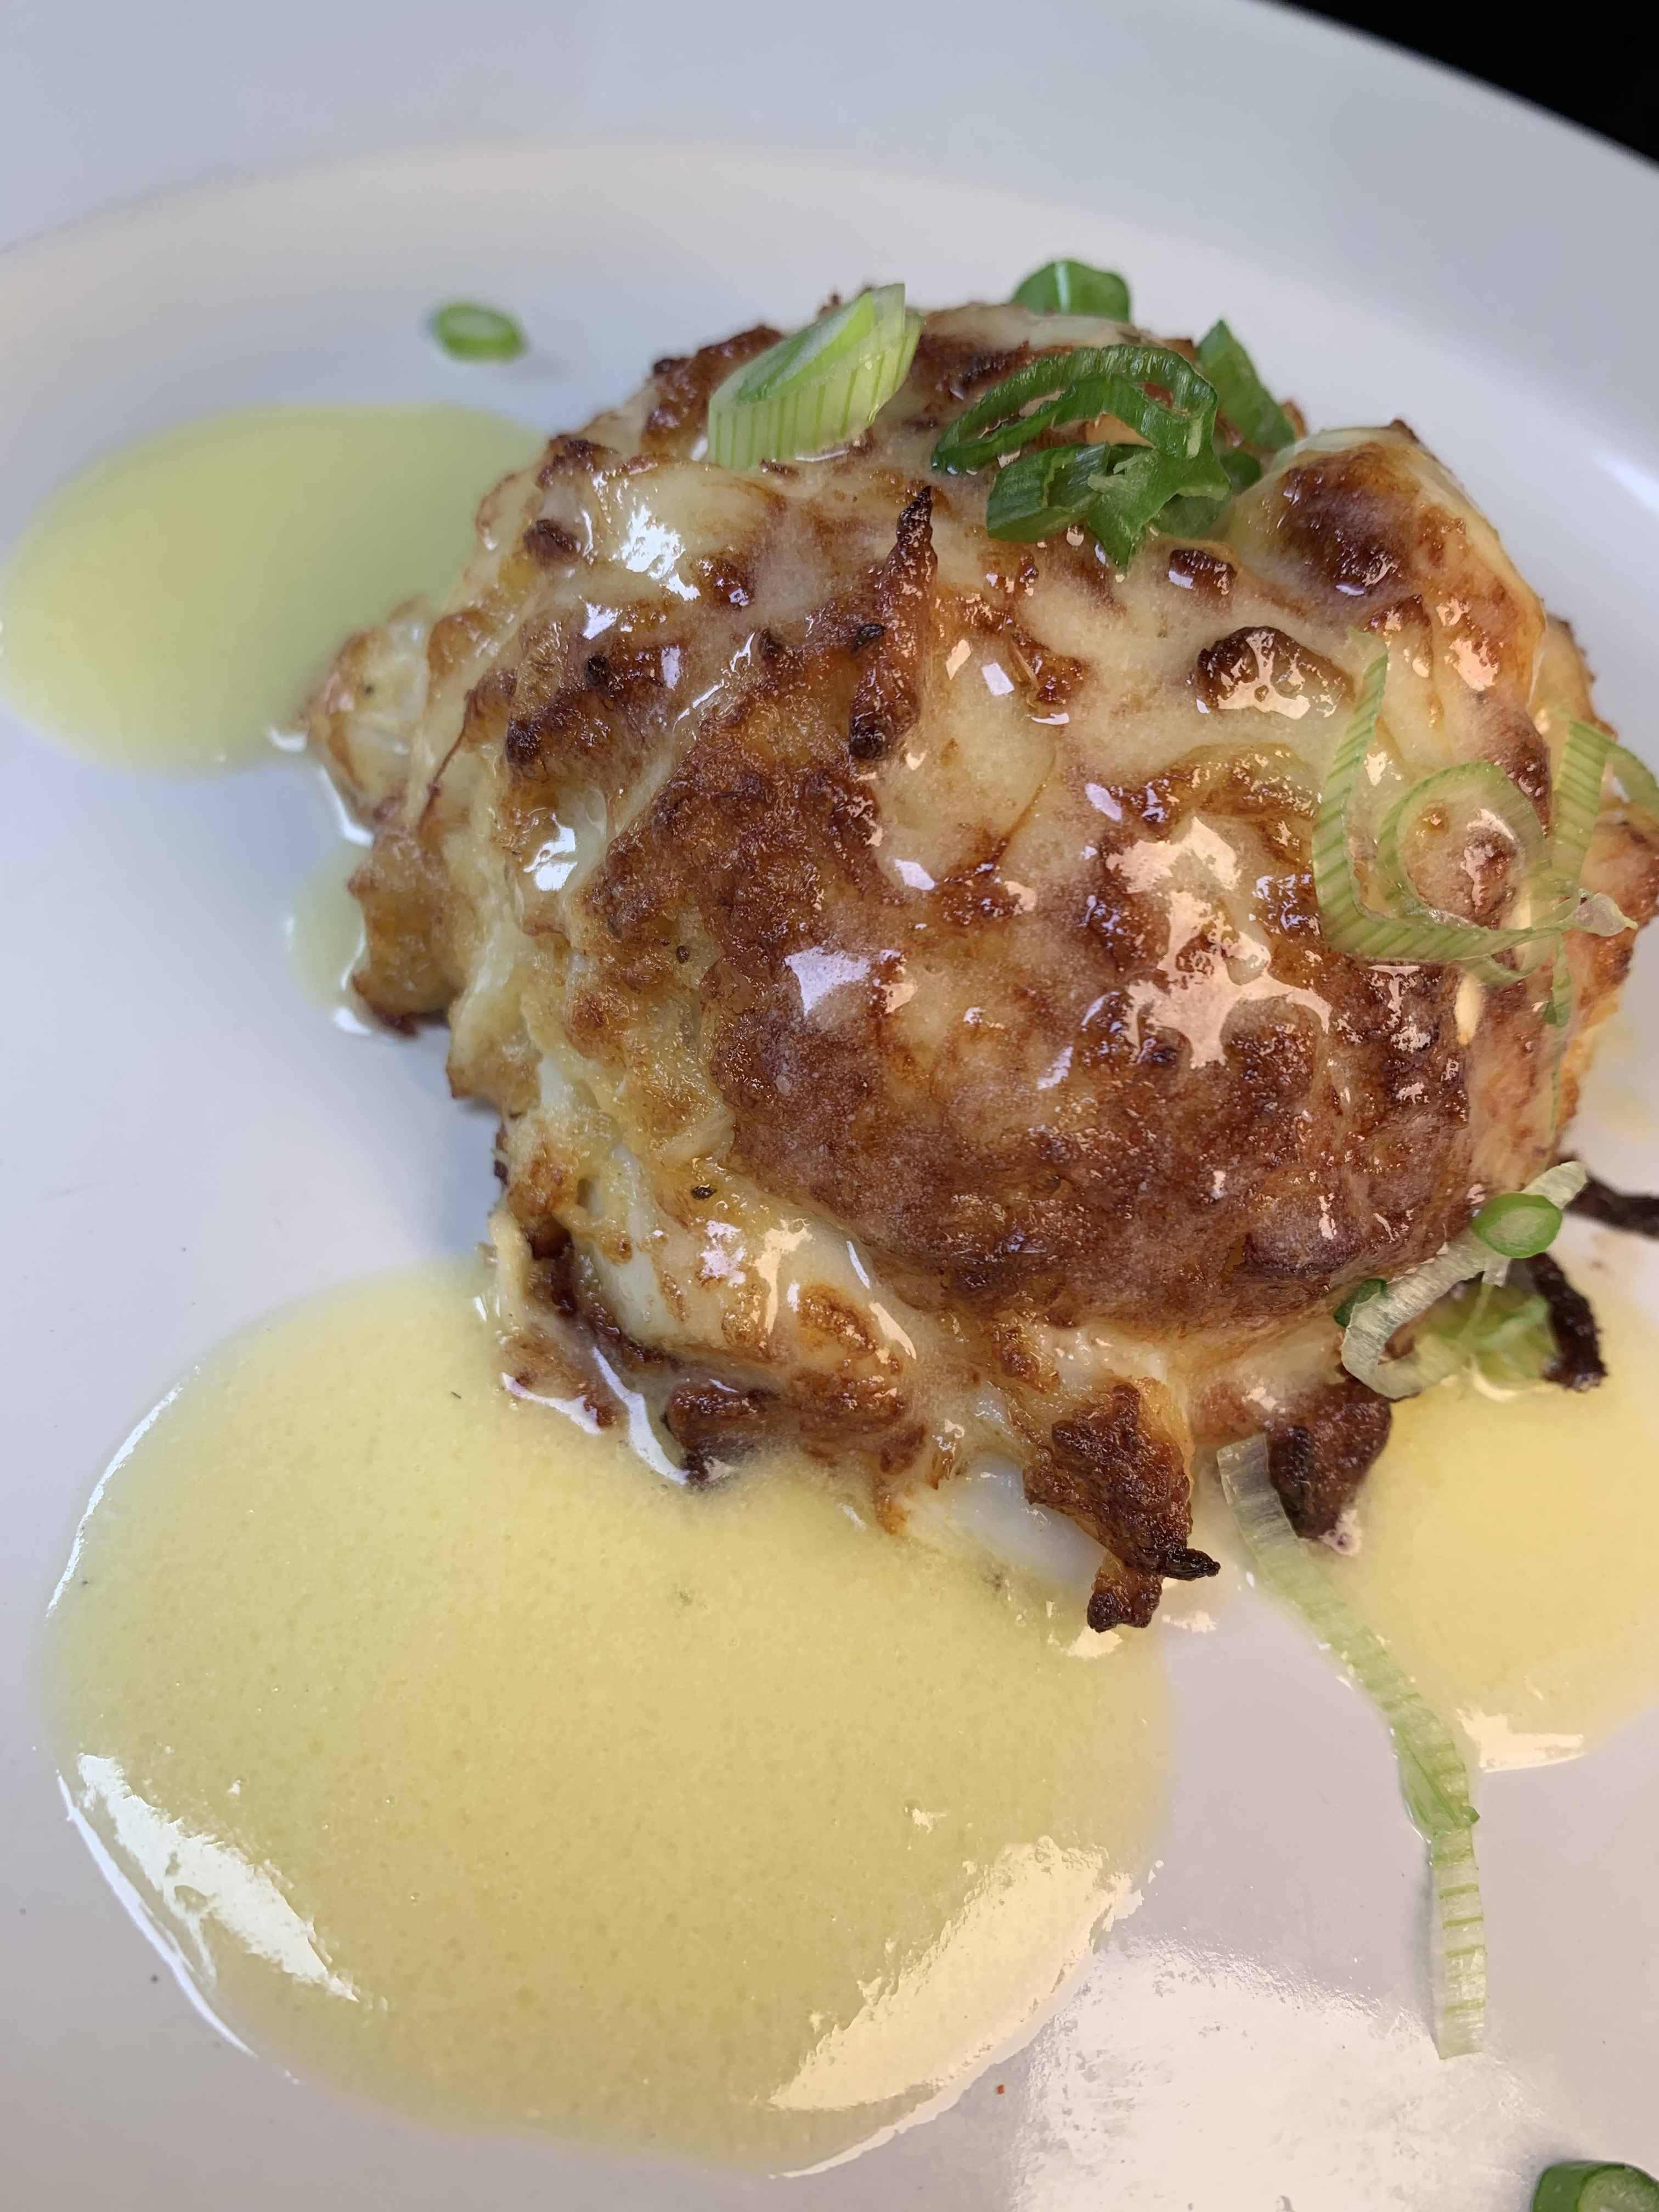 angie's seafood crab cake